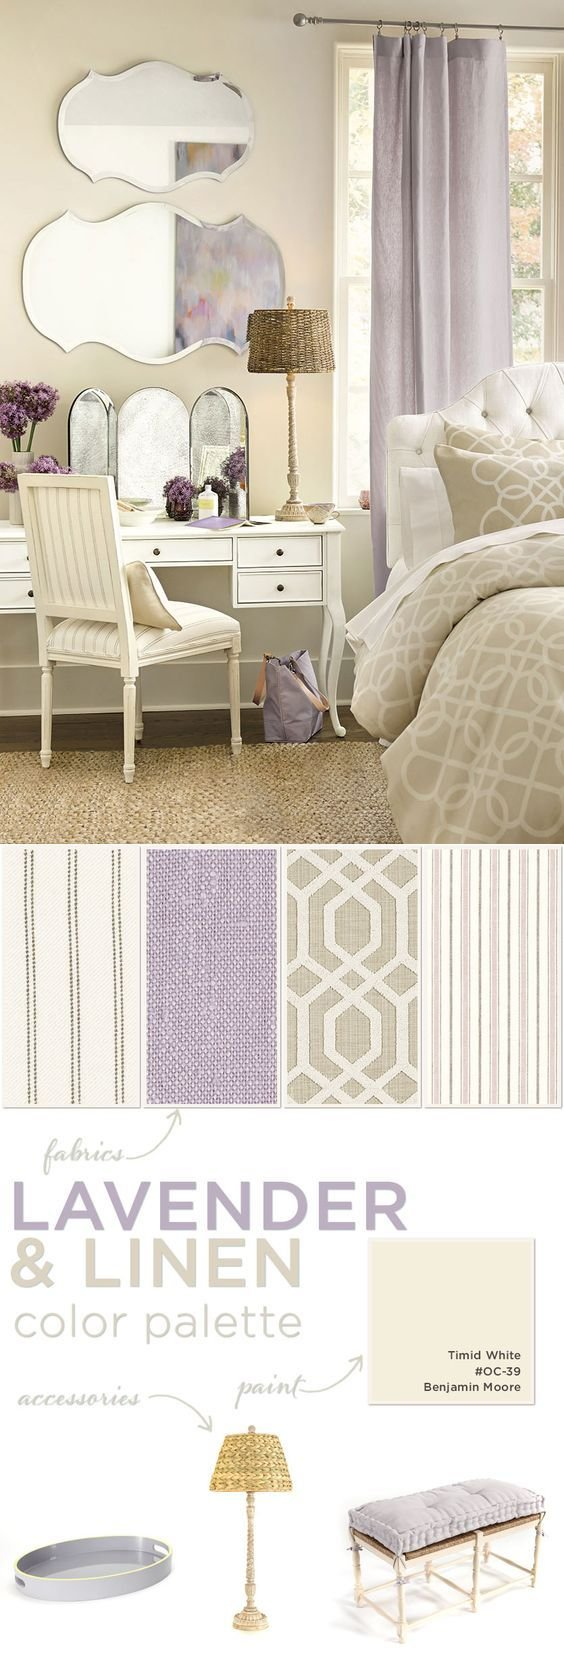 Best Inspired Color Palettes For Spring 2014 Spring Wall With Pictures